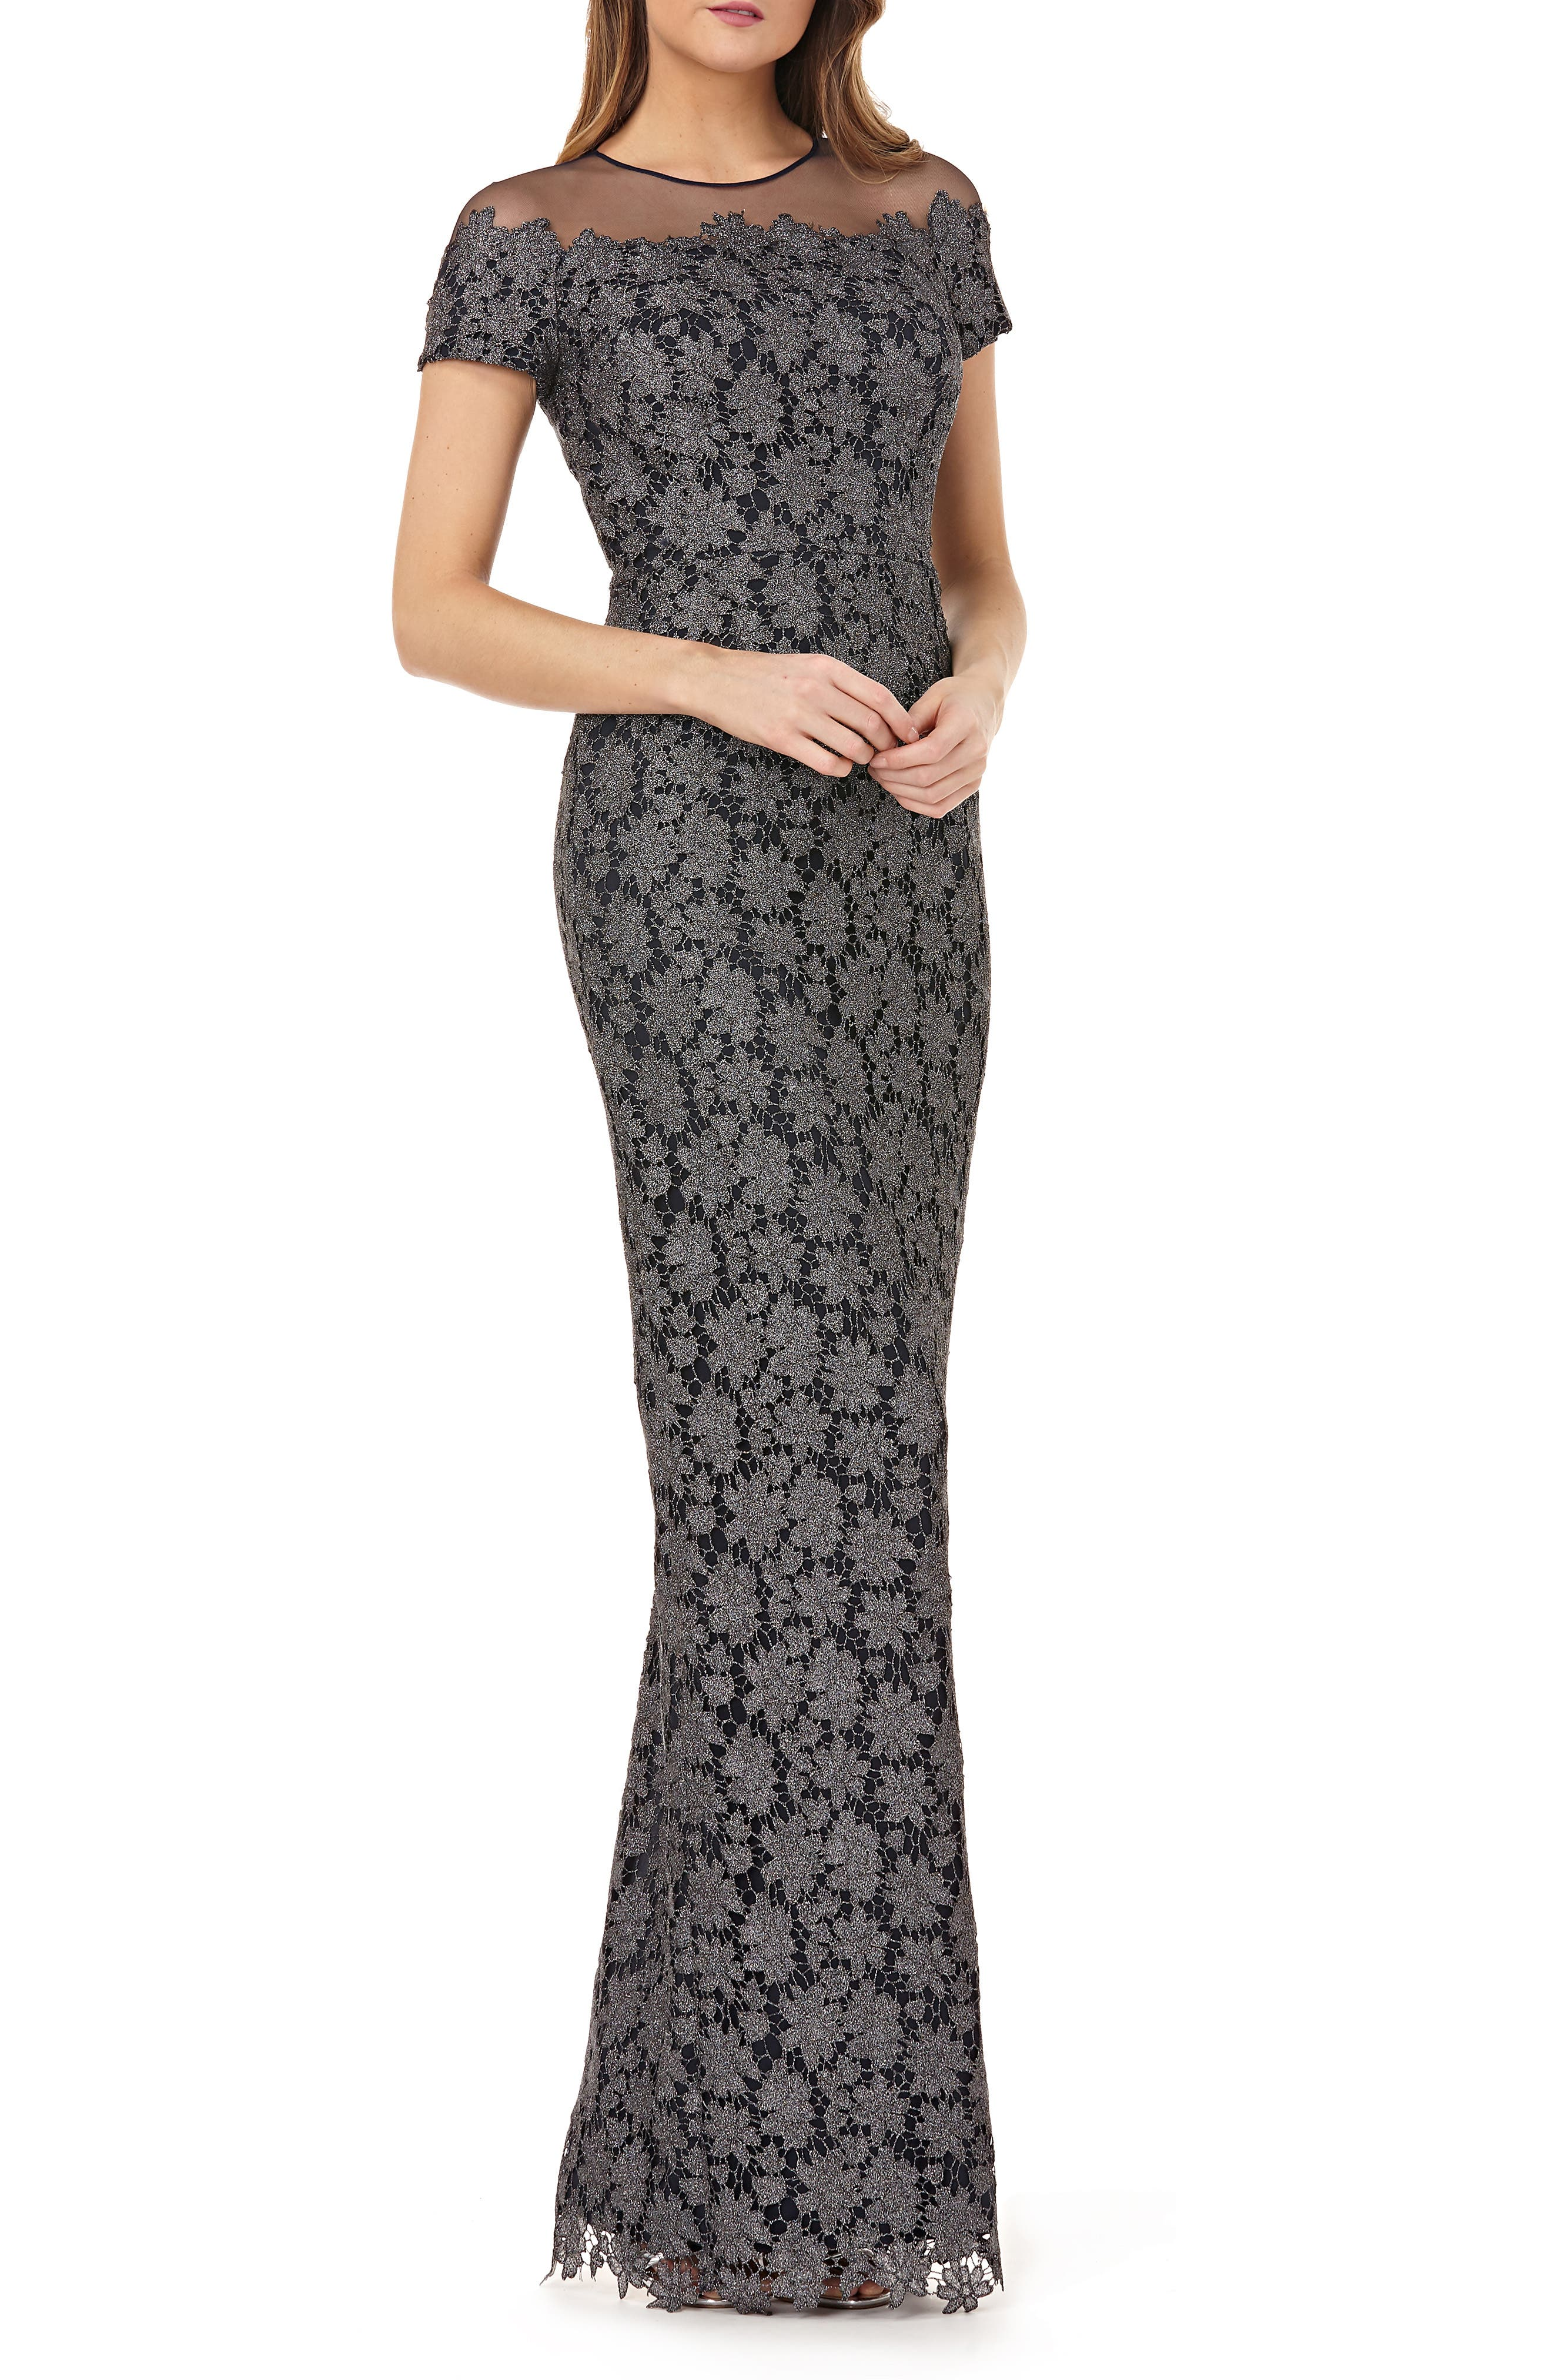 Js Collections Illusion Metallic Lace Gown, Grey